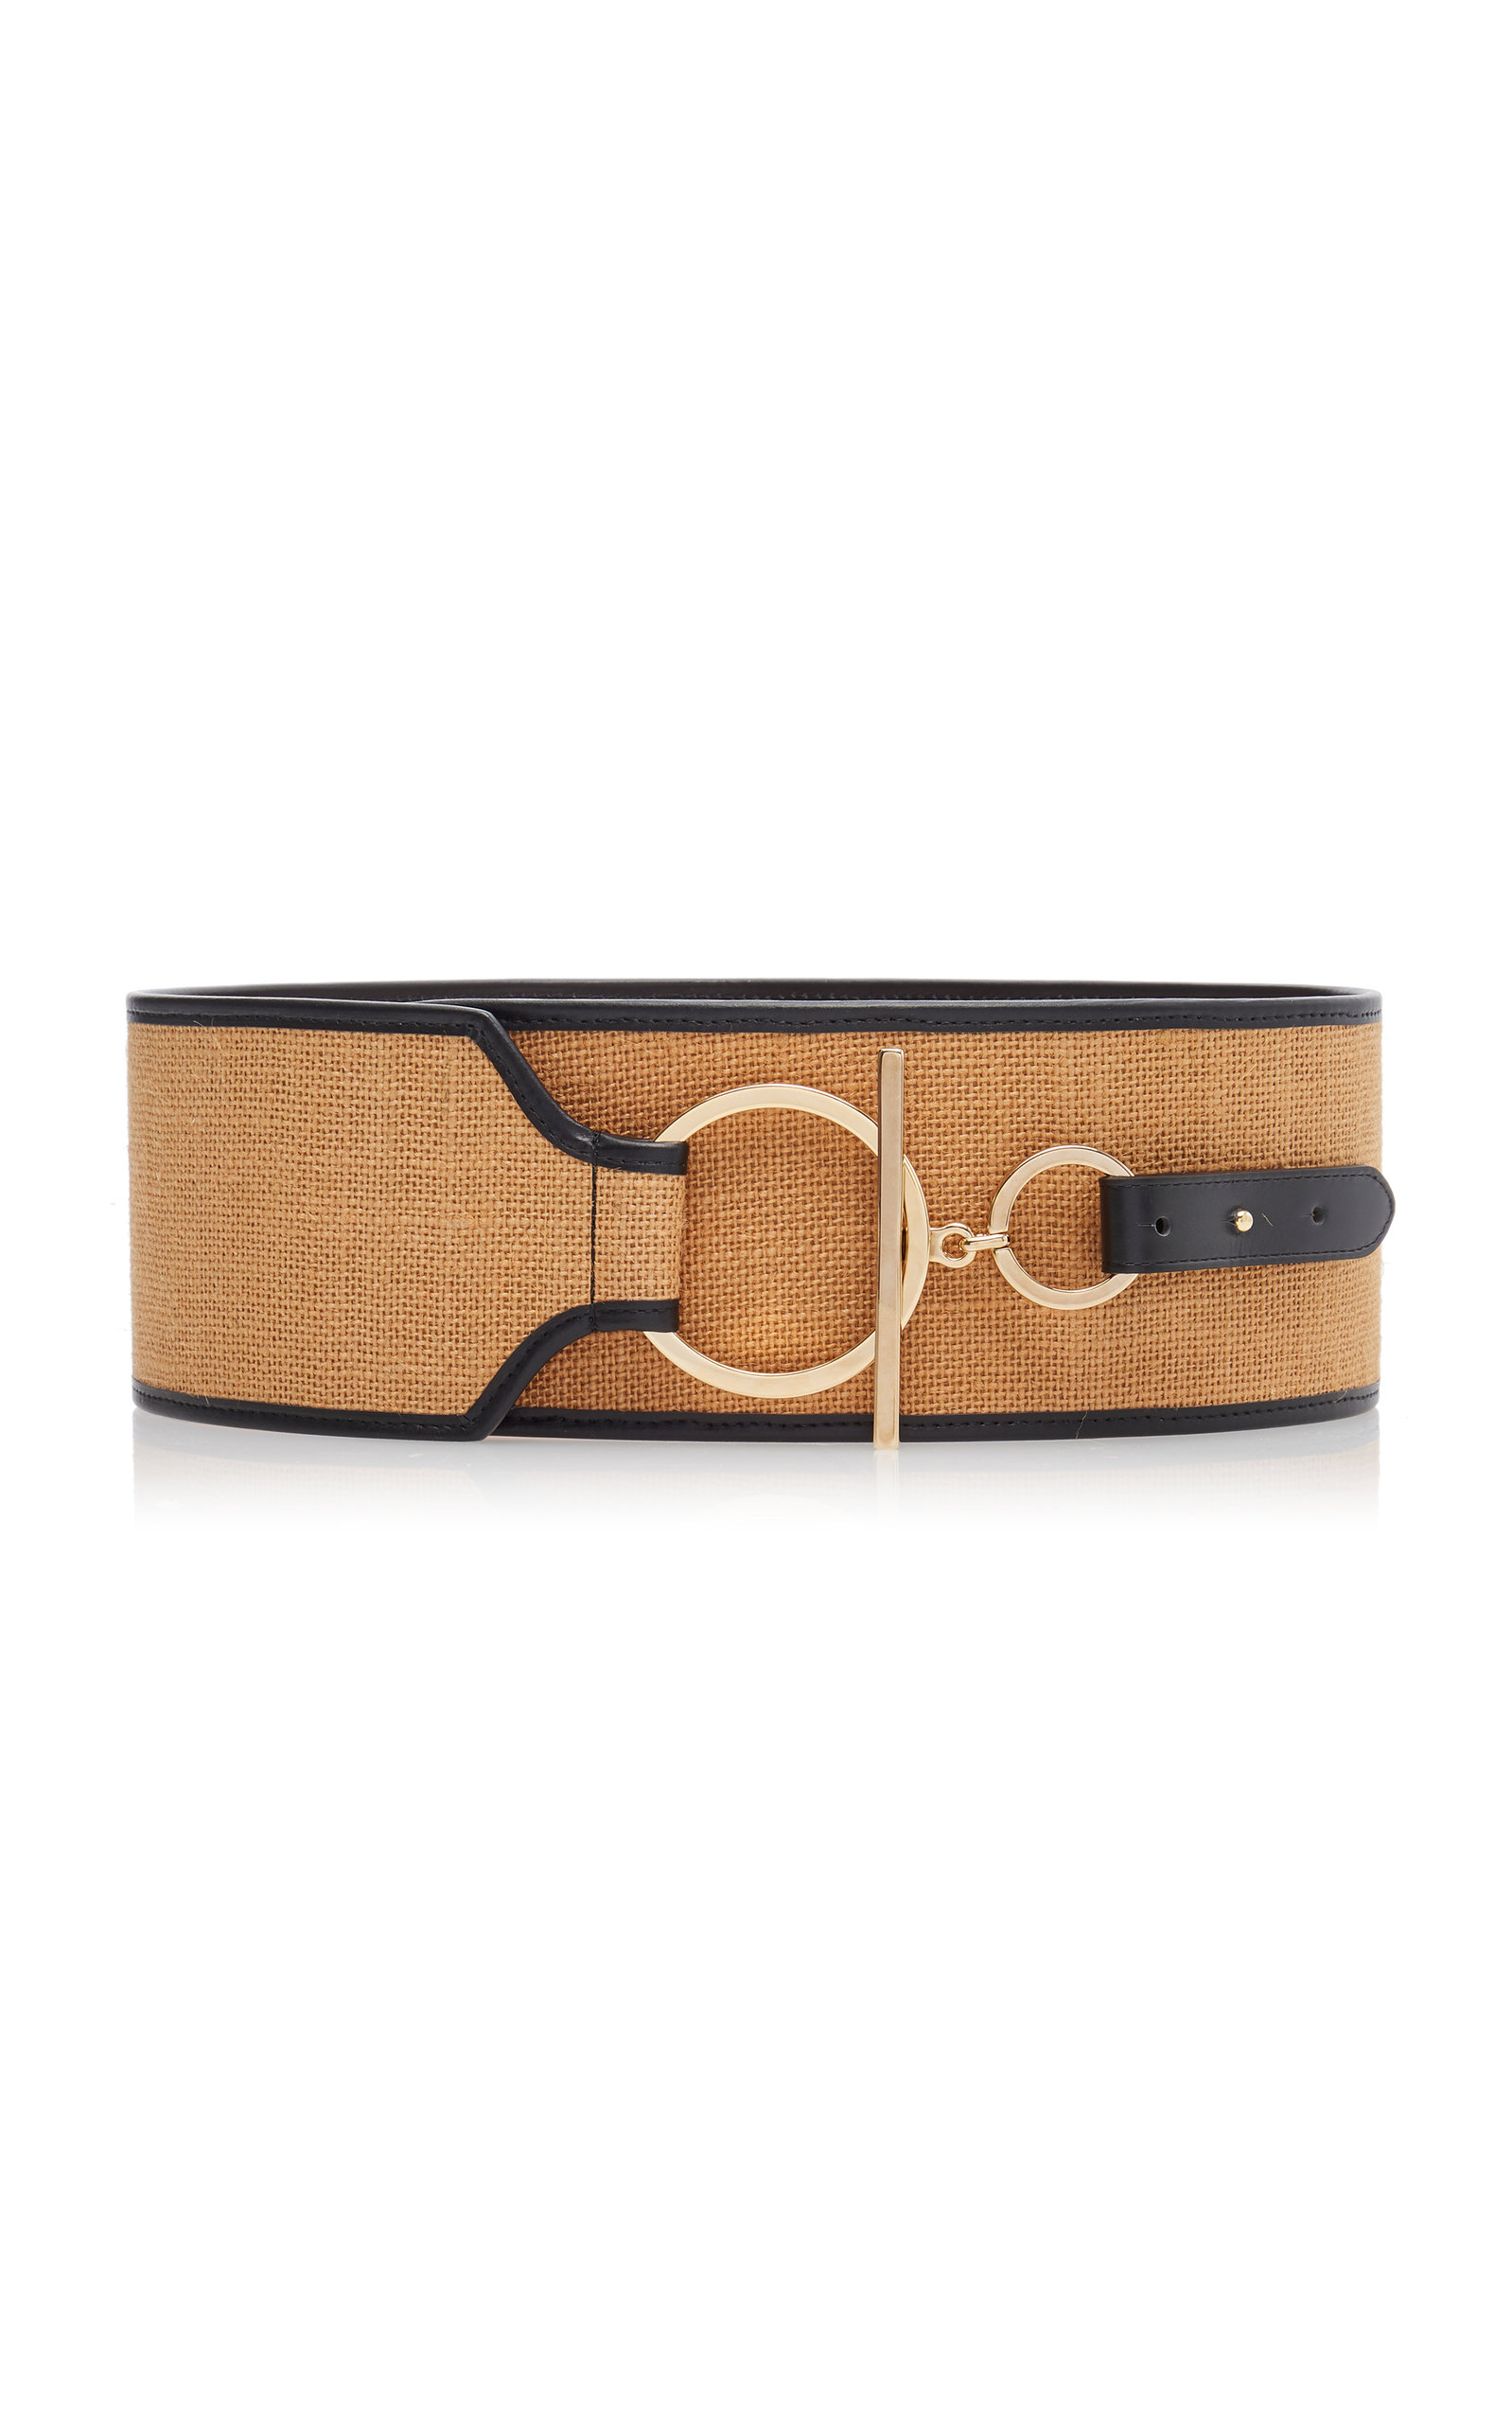 Maison Boinet | Maison Boinet Corset Nappa Leather Belt | Clouty